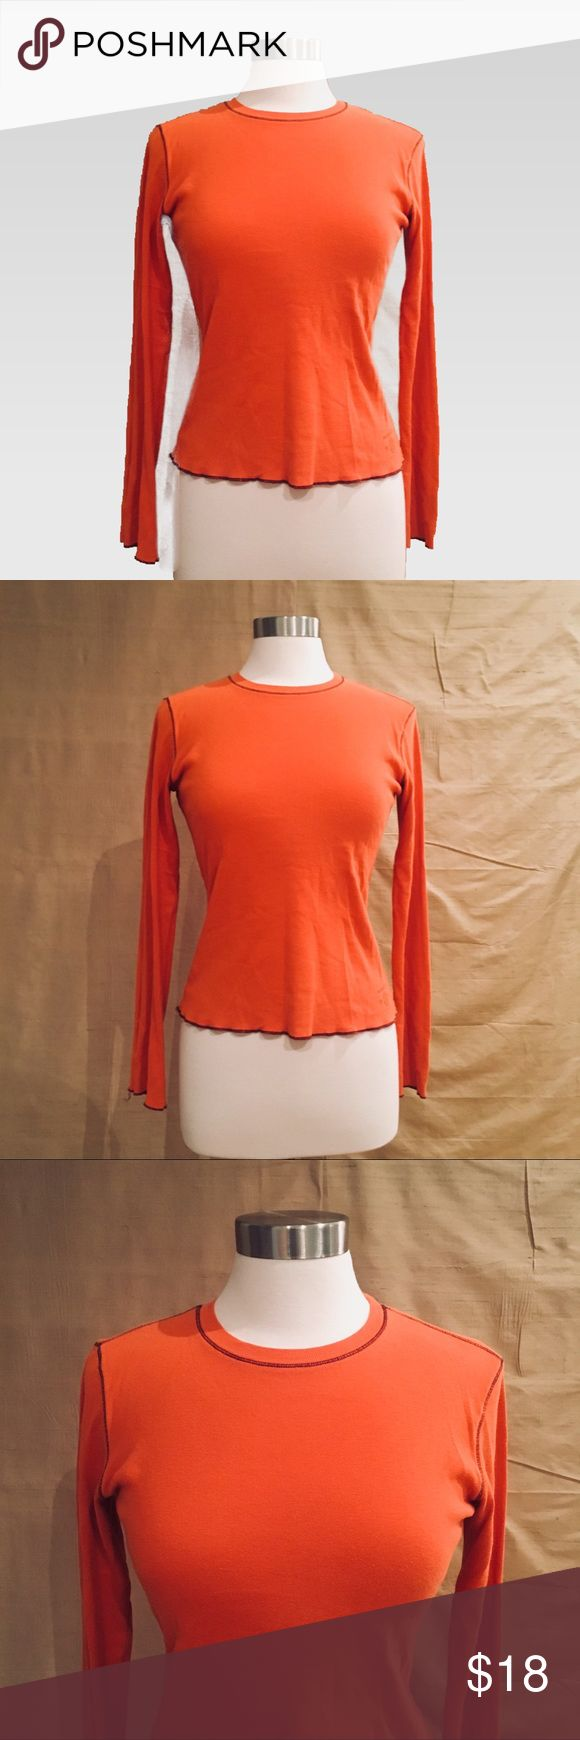 "American Eagle Outfitters Orange Long Sleeve Top S Gorgeous color on this American Eagle Outfitters orange long sleeve top. It also has brownish black stitching throughout. This is a classic staple in a great color and design. In GUC with no flaws and lots of life left. Size S.   Measurements:  Pit to pit: 17"" Sleeve: 23"" Length: 21½"" American Eagle Outfitters Tops"